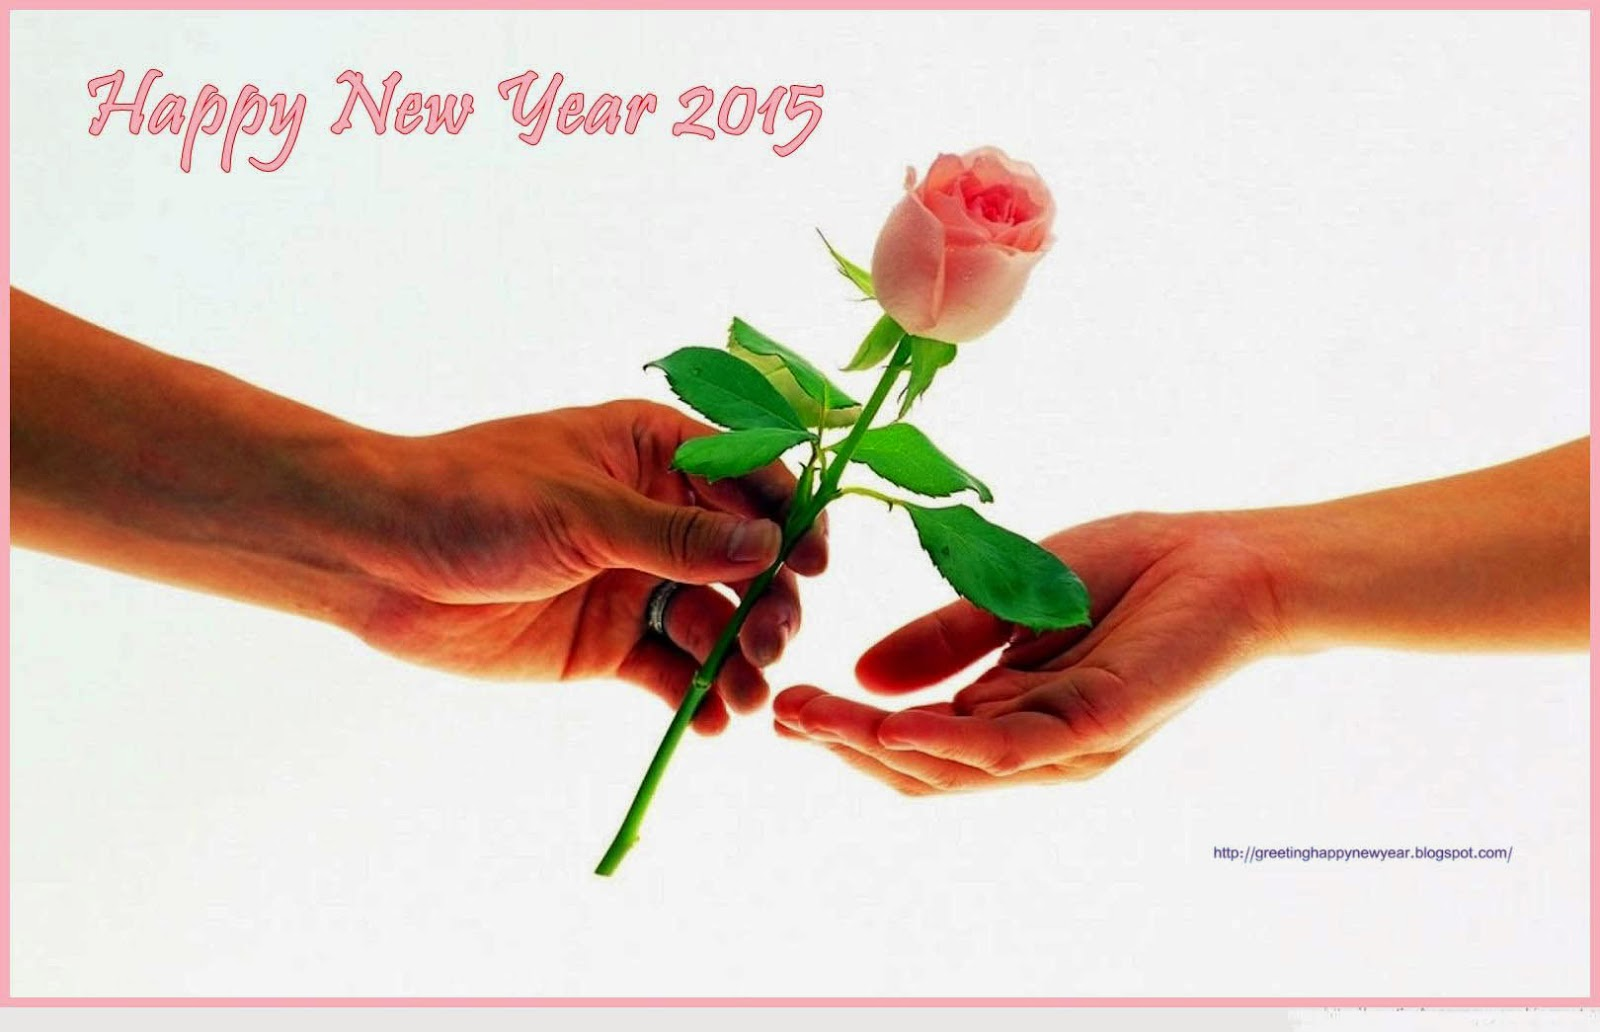 Happy New Year 2015 HD Cards For Friends